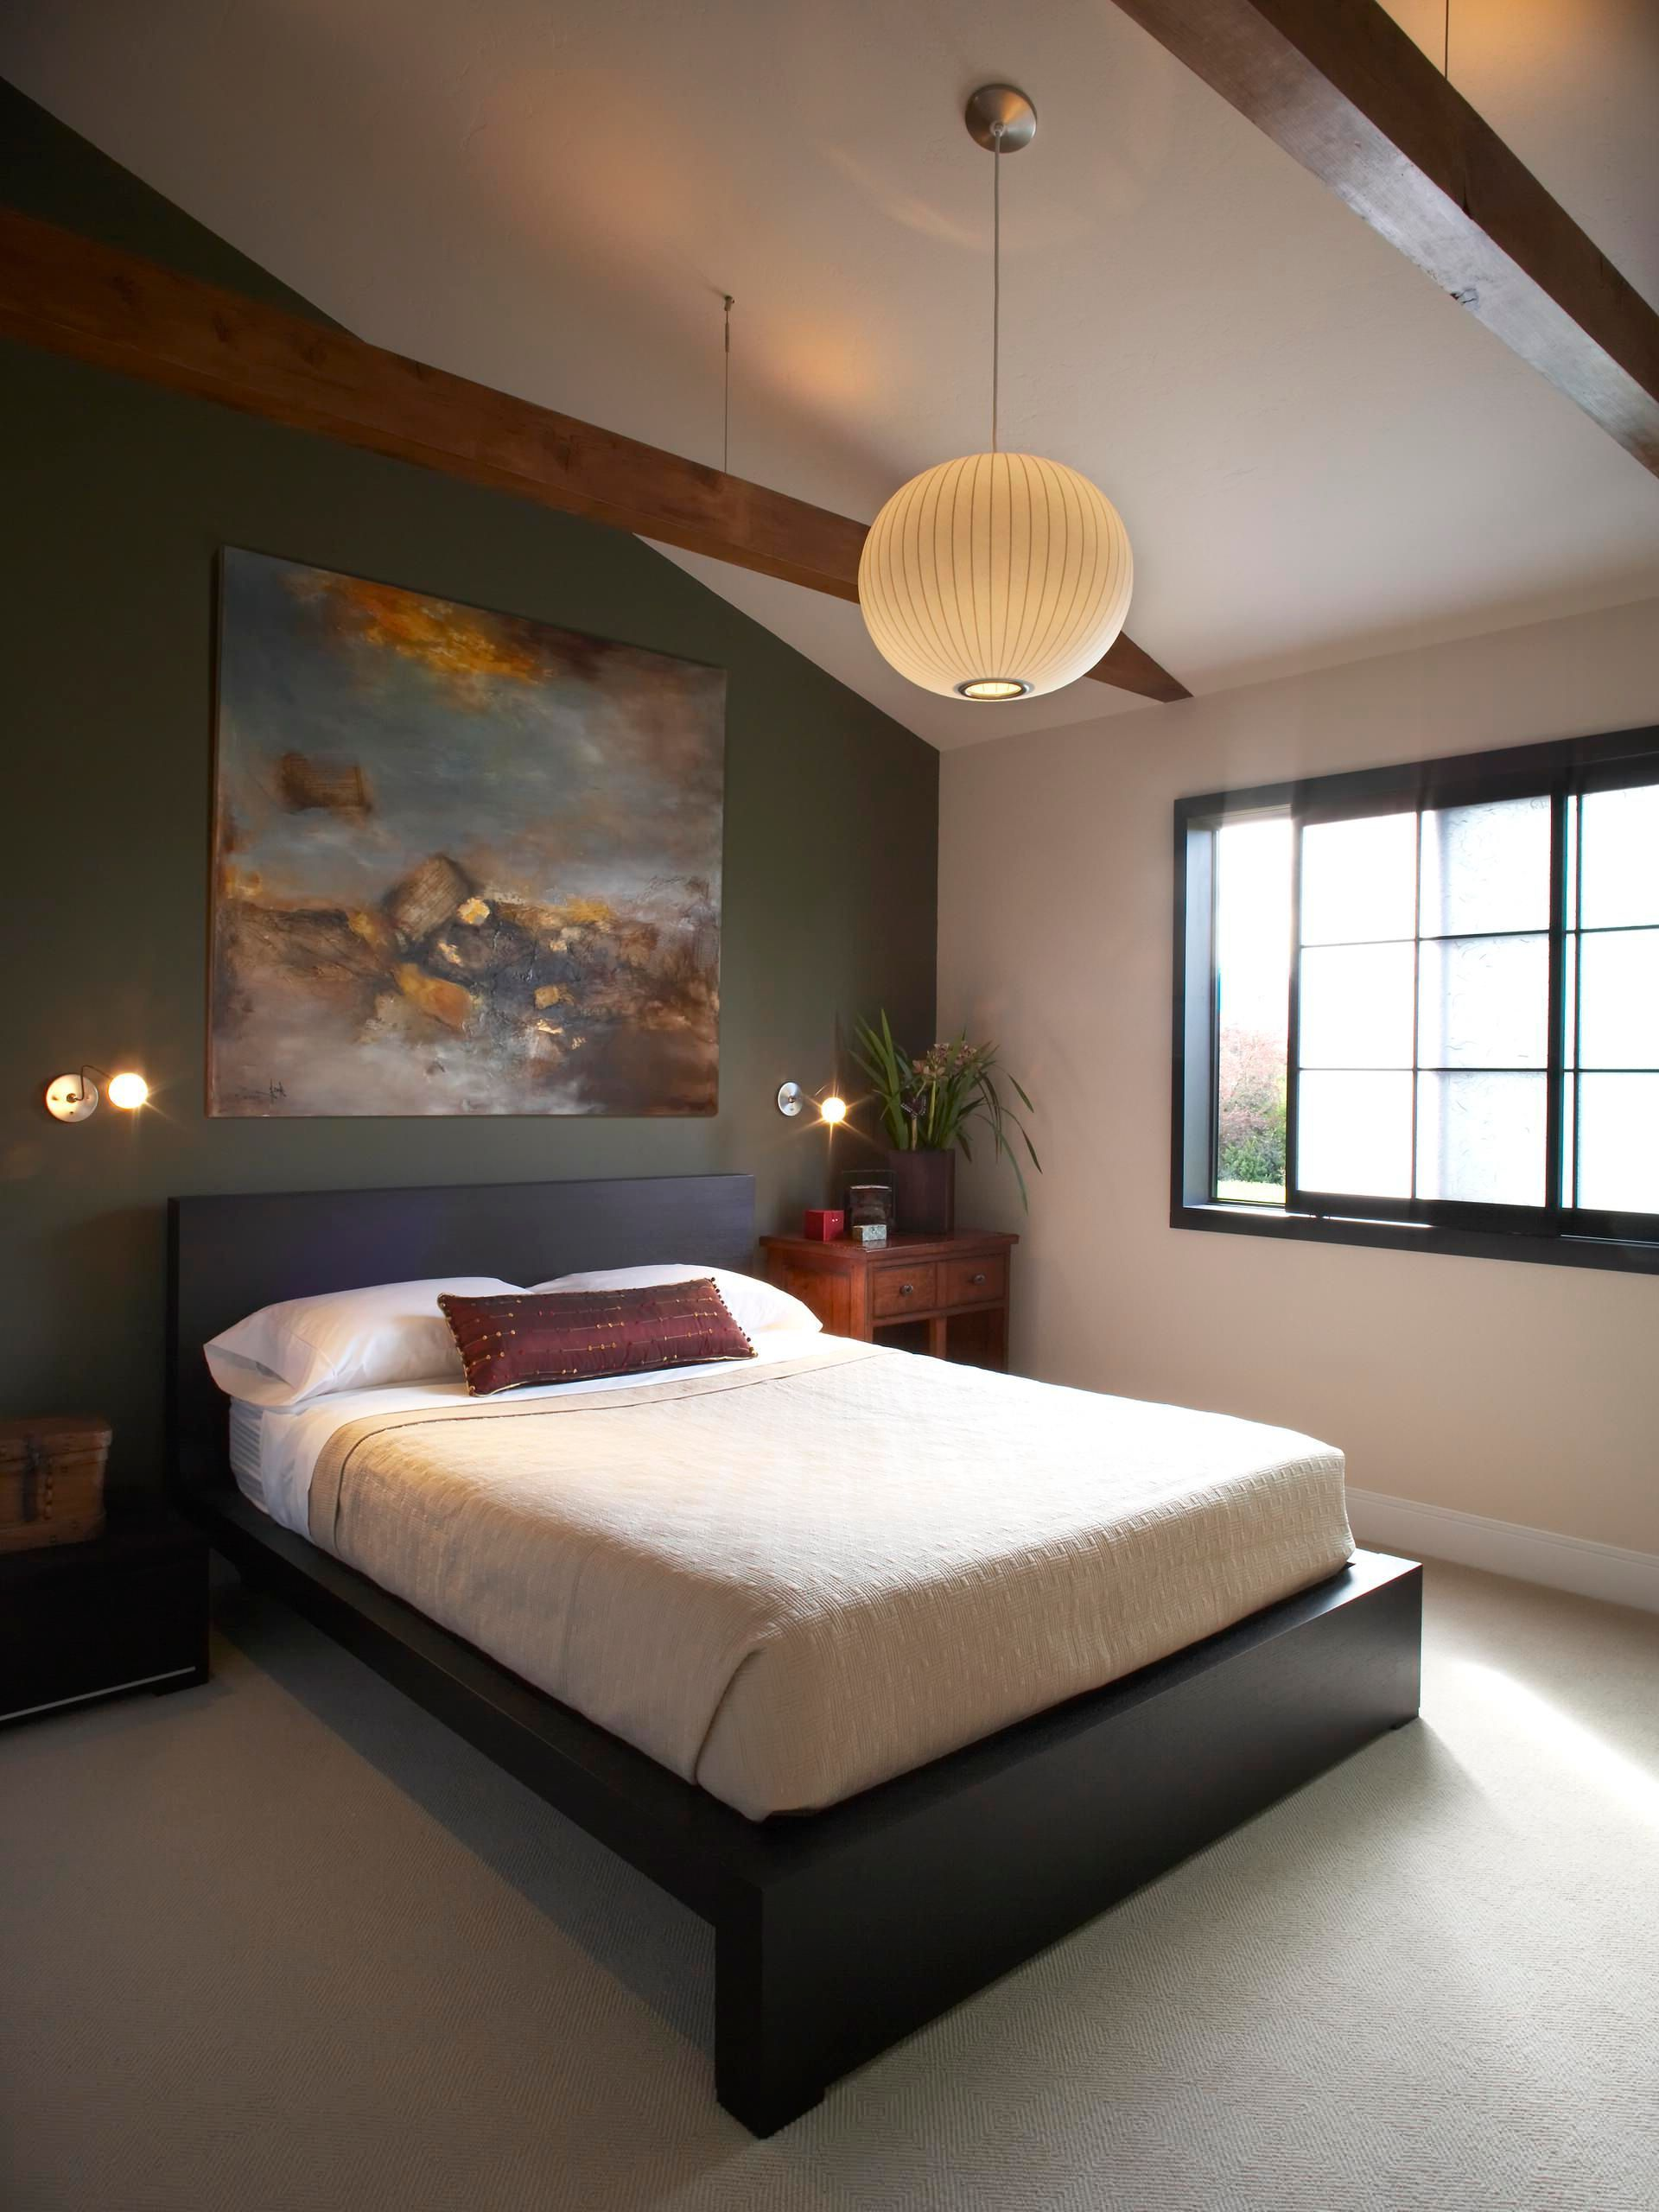 Bedrooms inspired by Japanese decor AsianZenHomeDecor